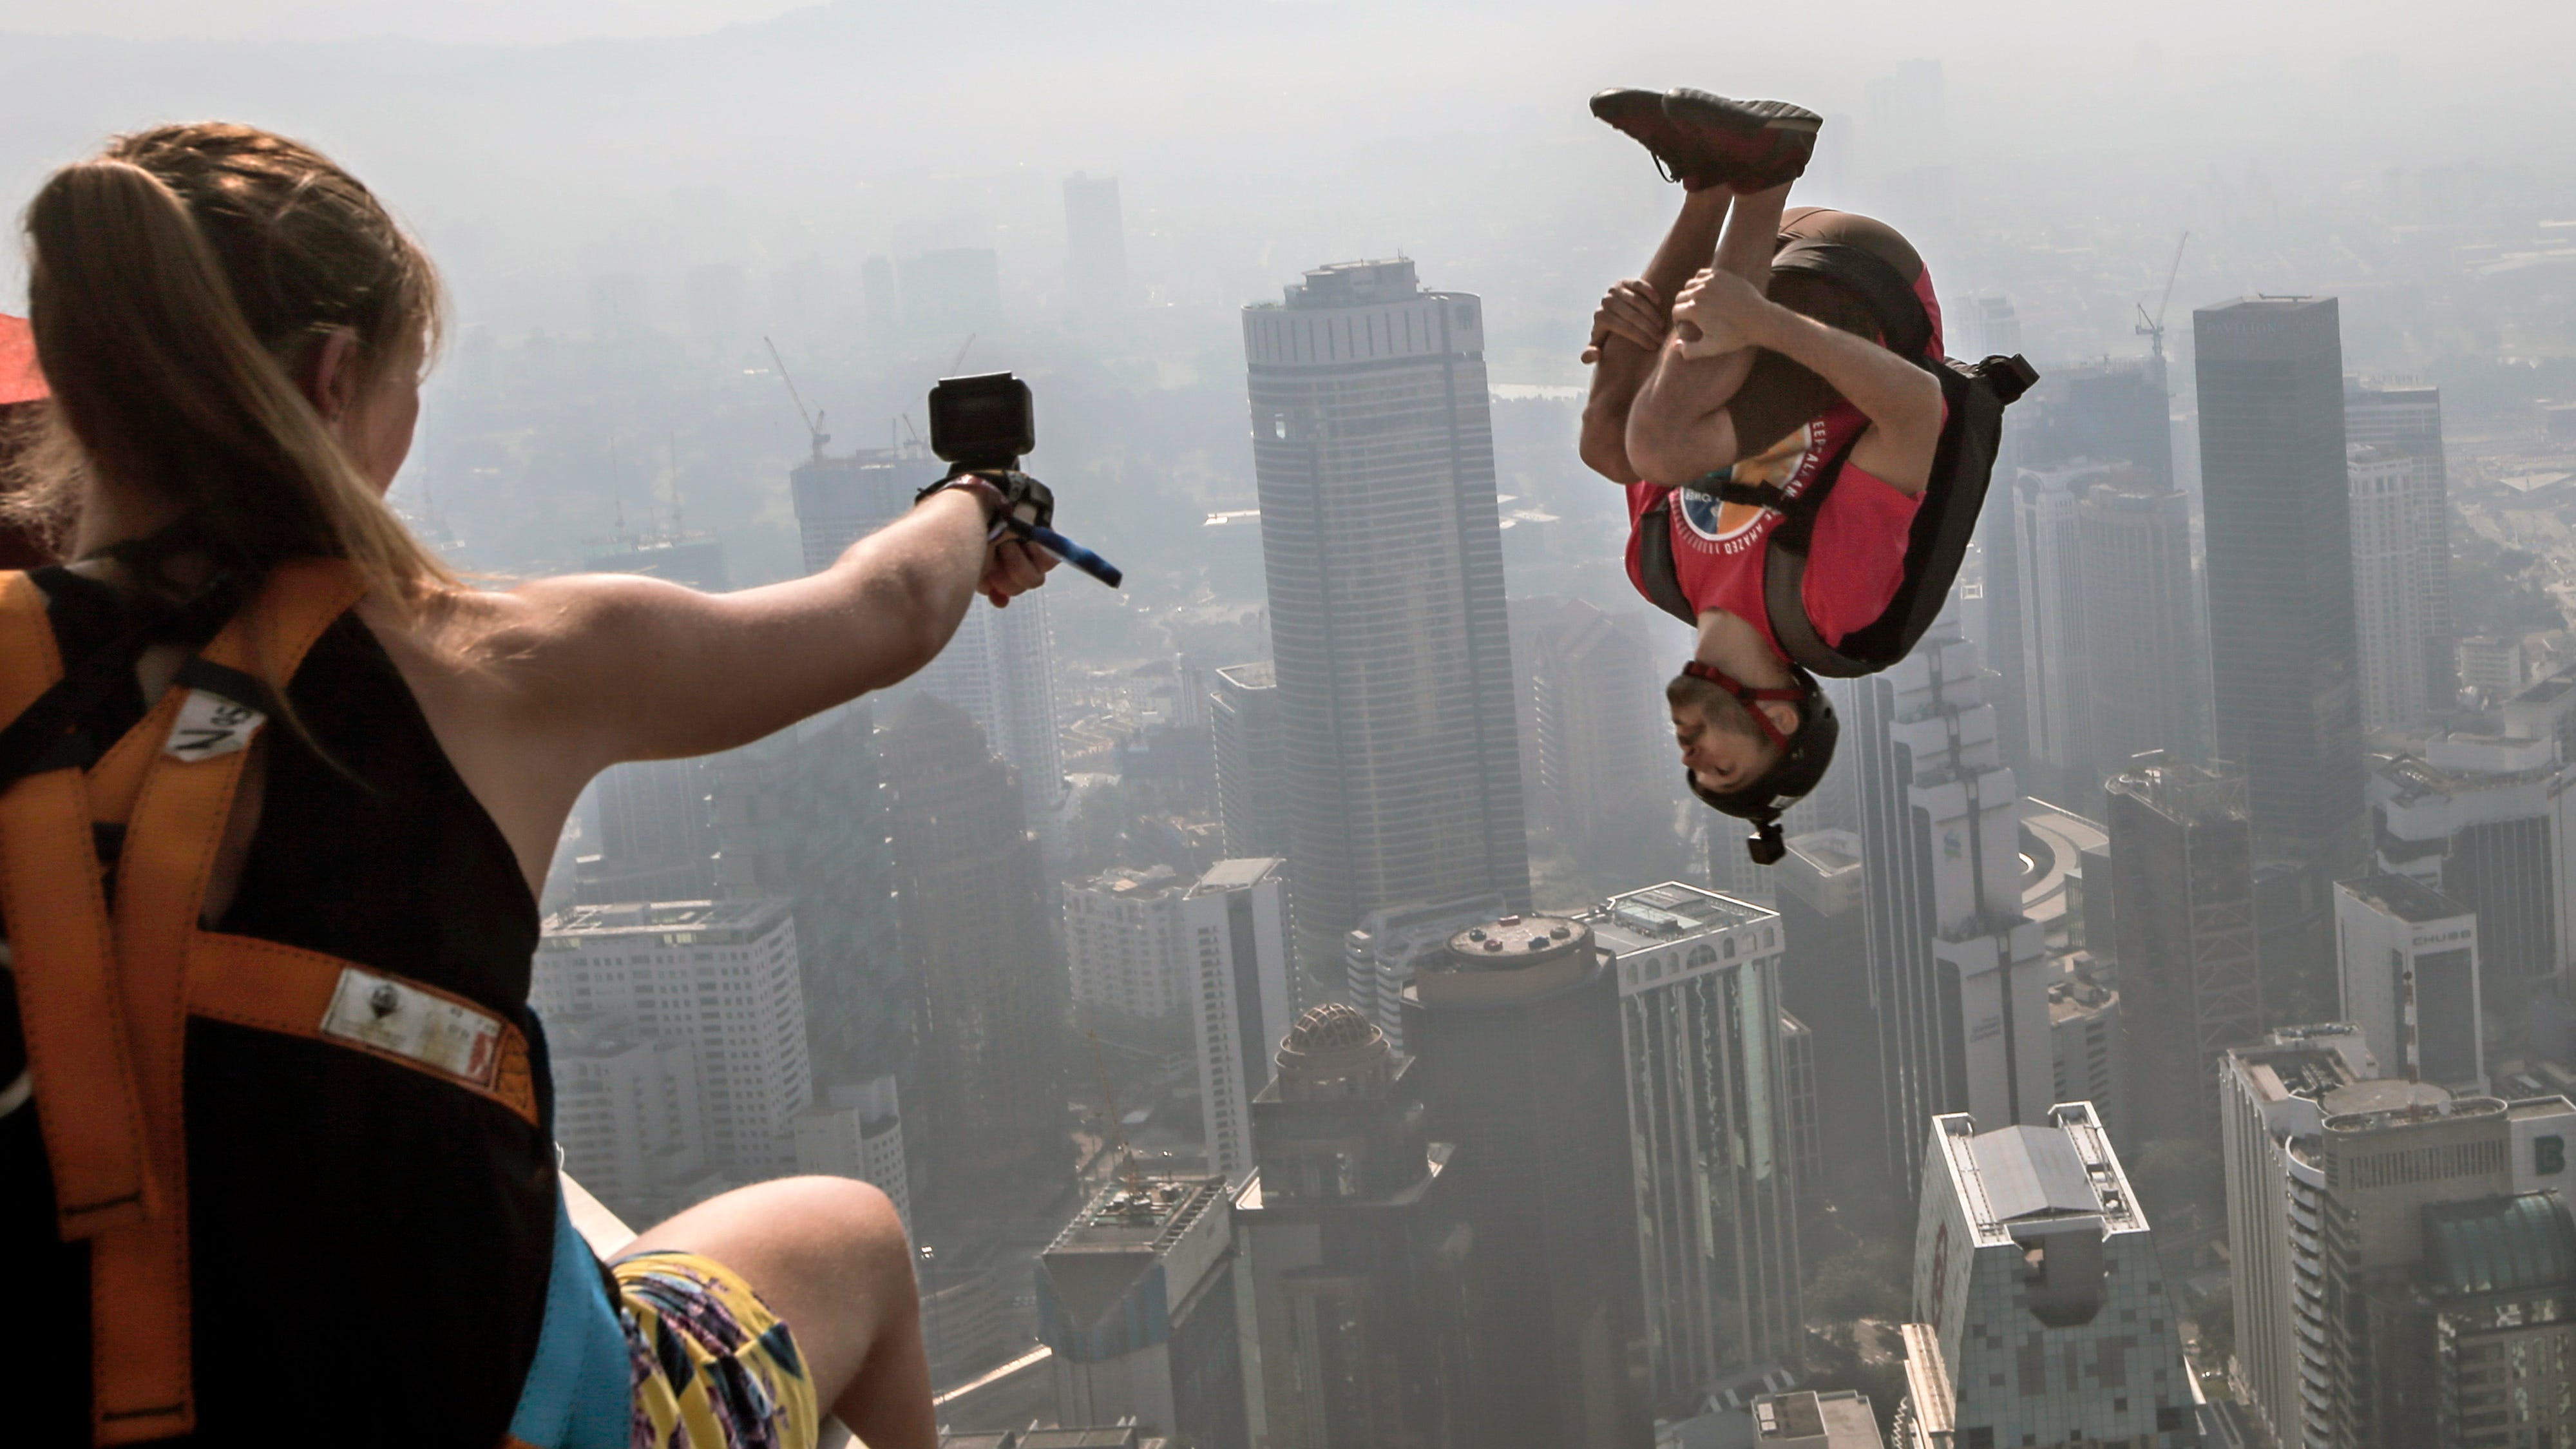 BASE jumper William Mitchell, of the United States, jumps from a nearly 1,000-foot high deck during the Kuala Lumpur Tower International Jump in Kuala Lumpur, Malaysia, Sept. 30, 2018.